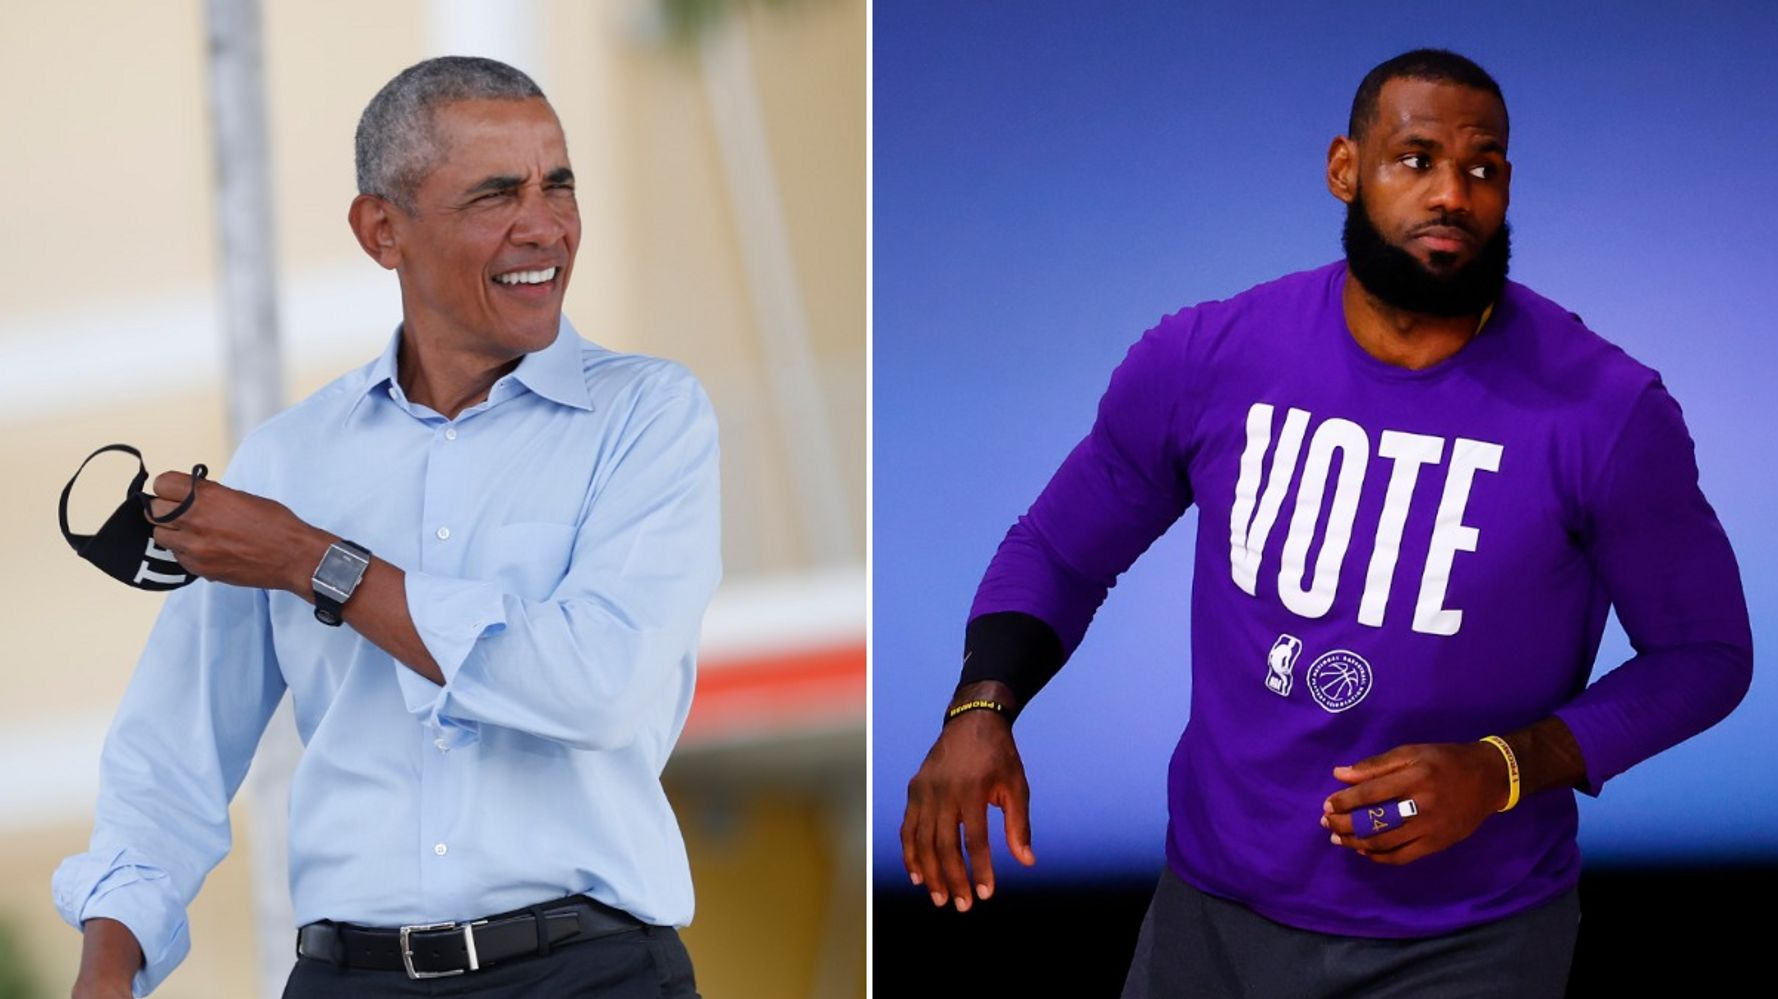 Barack Obama To Appear On LeBron James' Show; NBA Star Calls It 'An Honor'